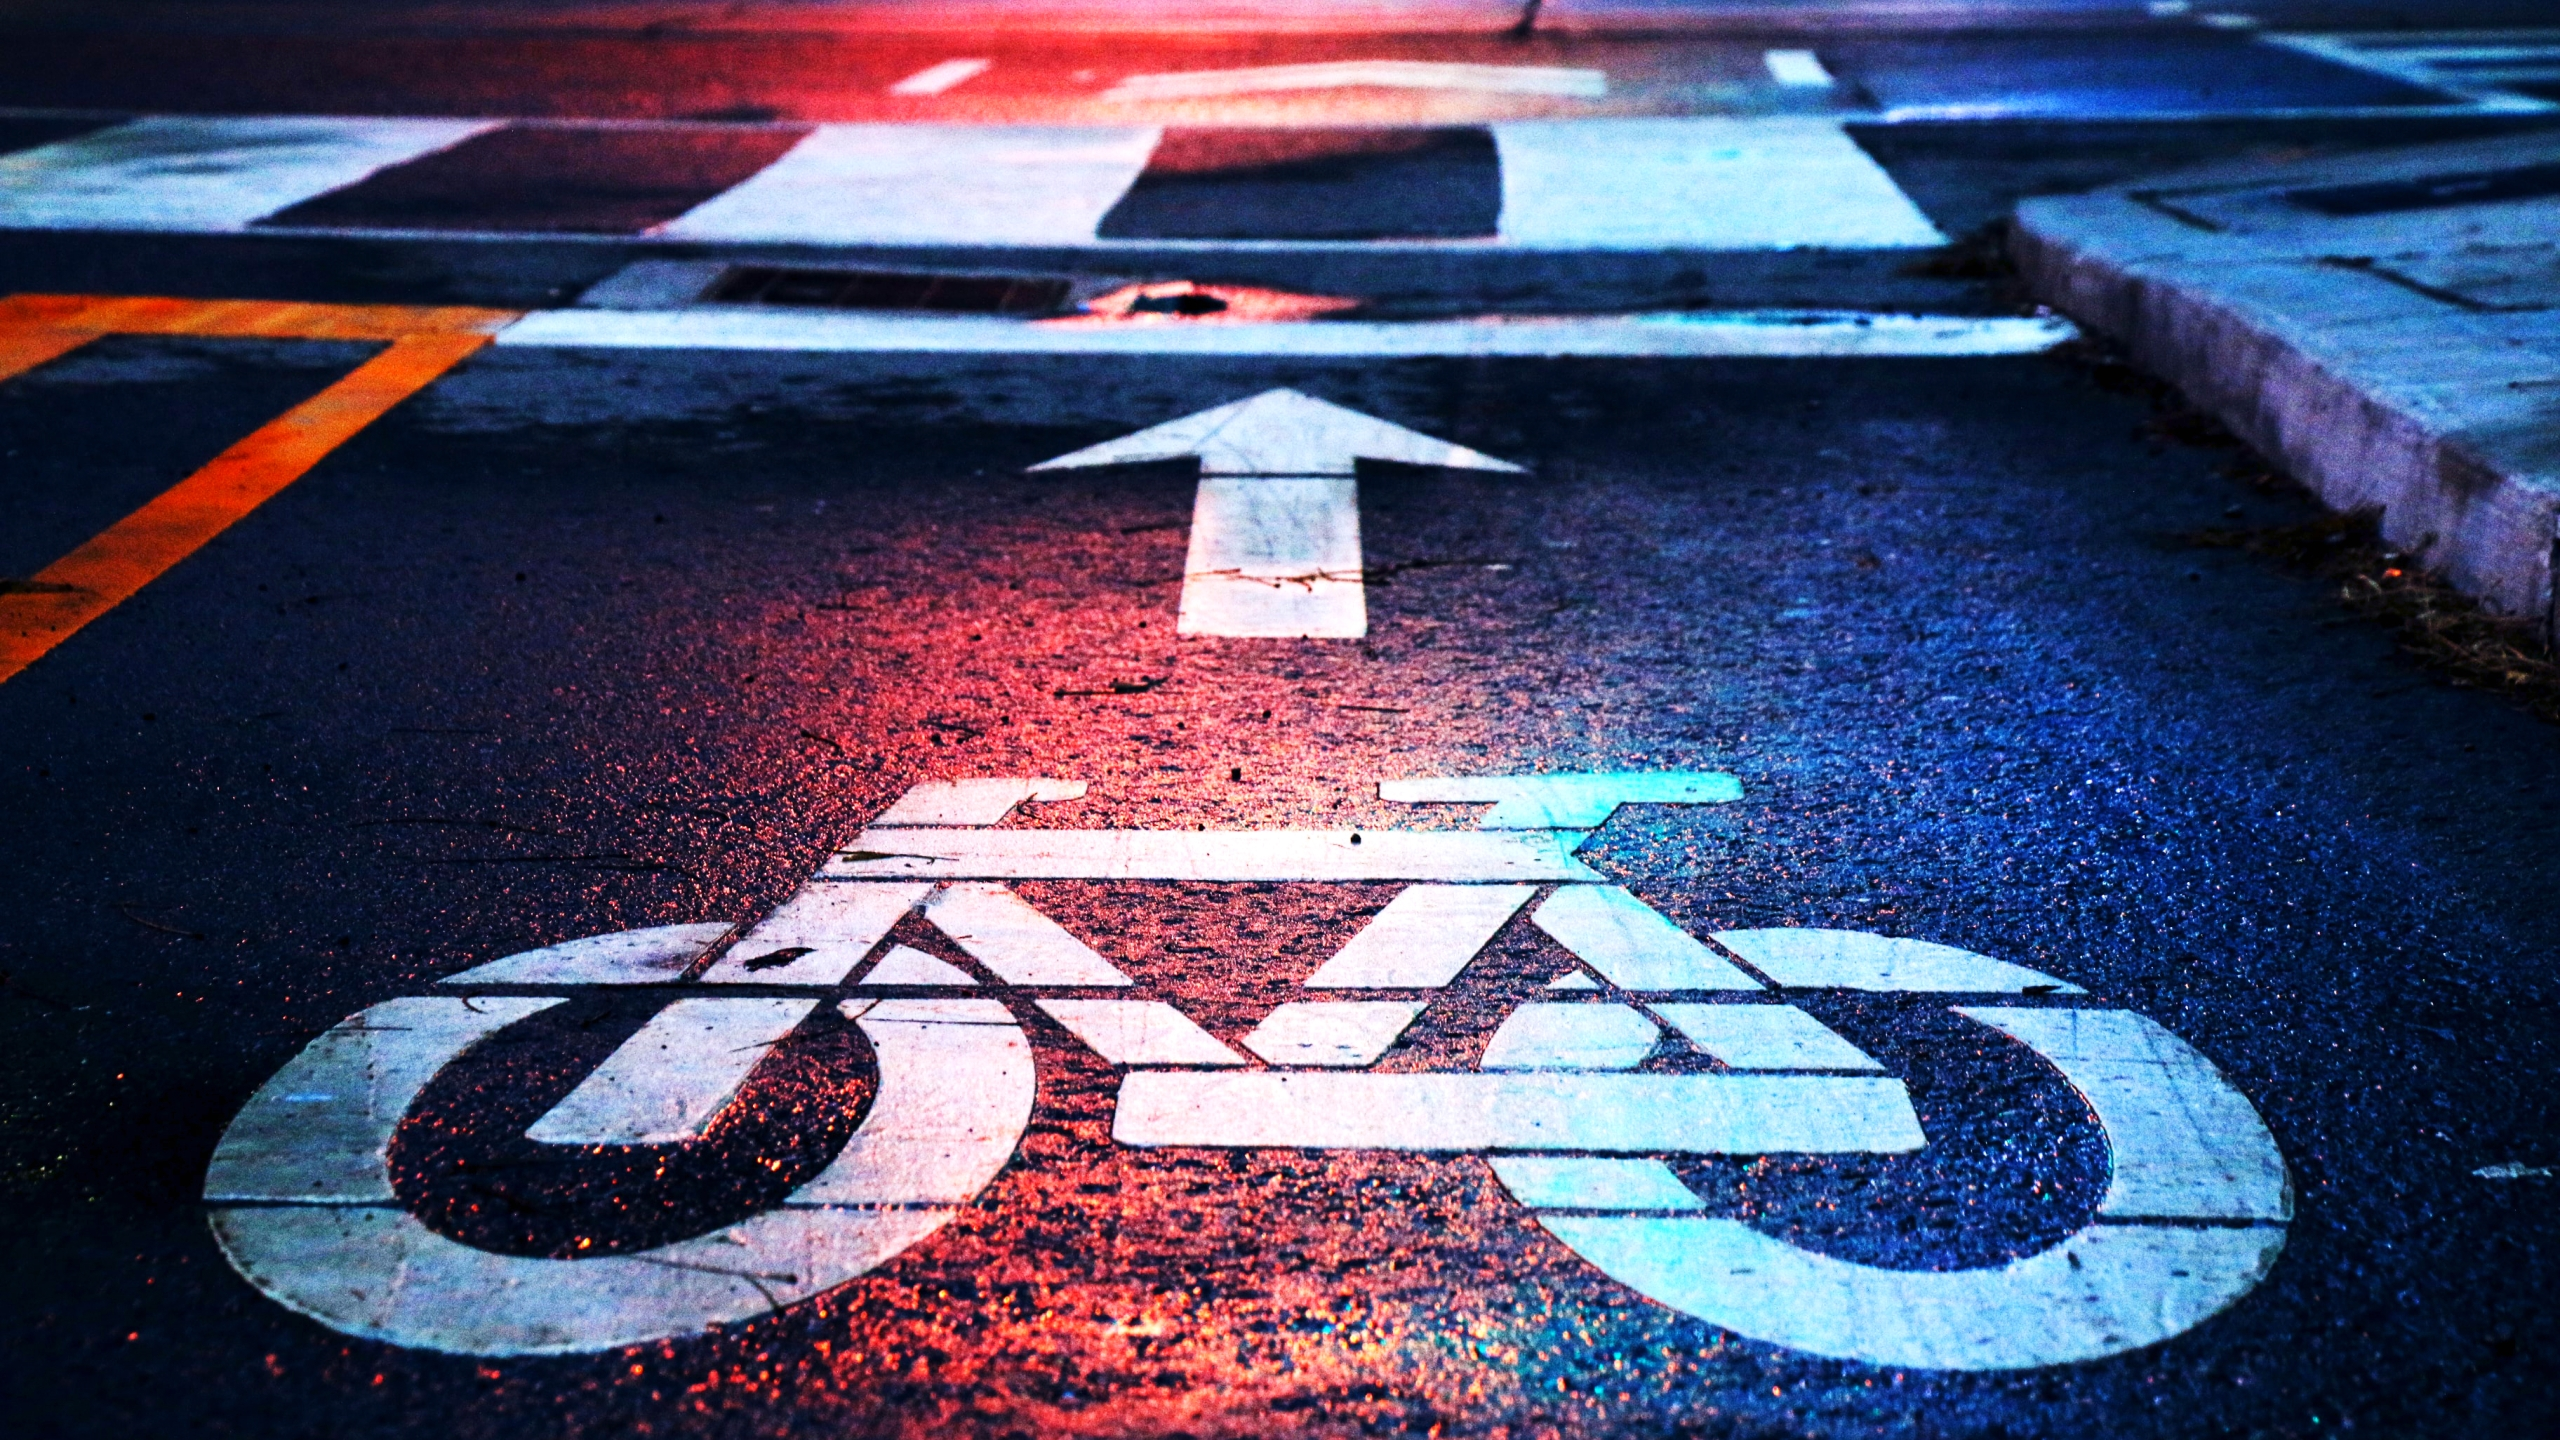 Bike lane image on asphalt road